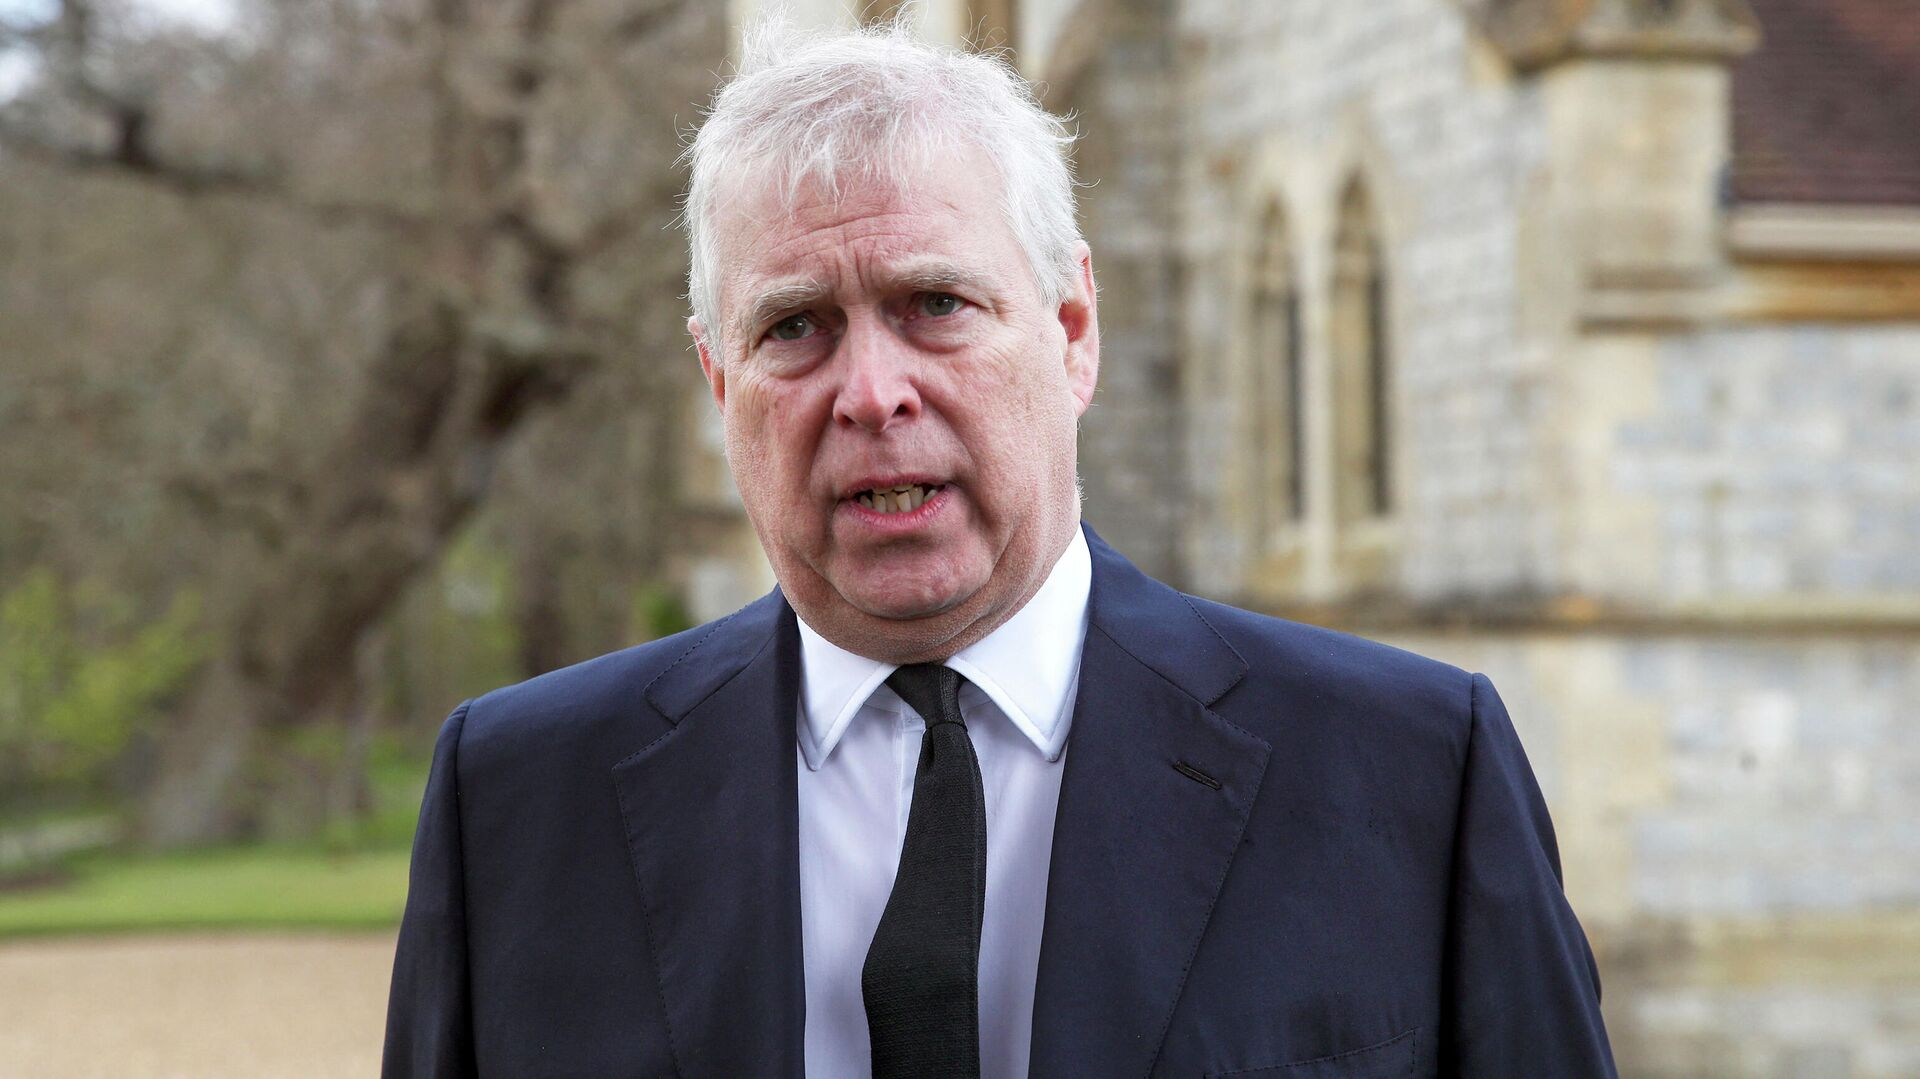 Britain's Prince Andrew, Duke of York, speaks during a television interview outside the Royal Chapel of All Saints in Windsor on April 11, 2021, two days after the death of his father Britain's Prince Philip, Duke of Edinburgh. - Sputnik International, 1920, 21.09.2021